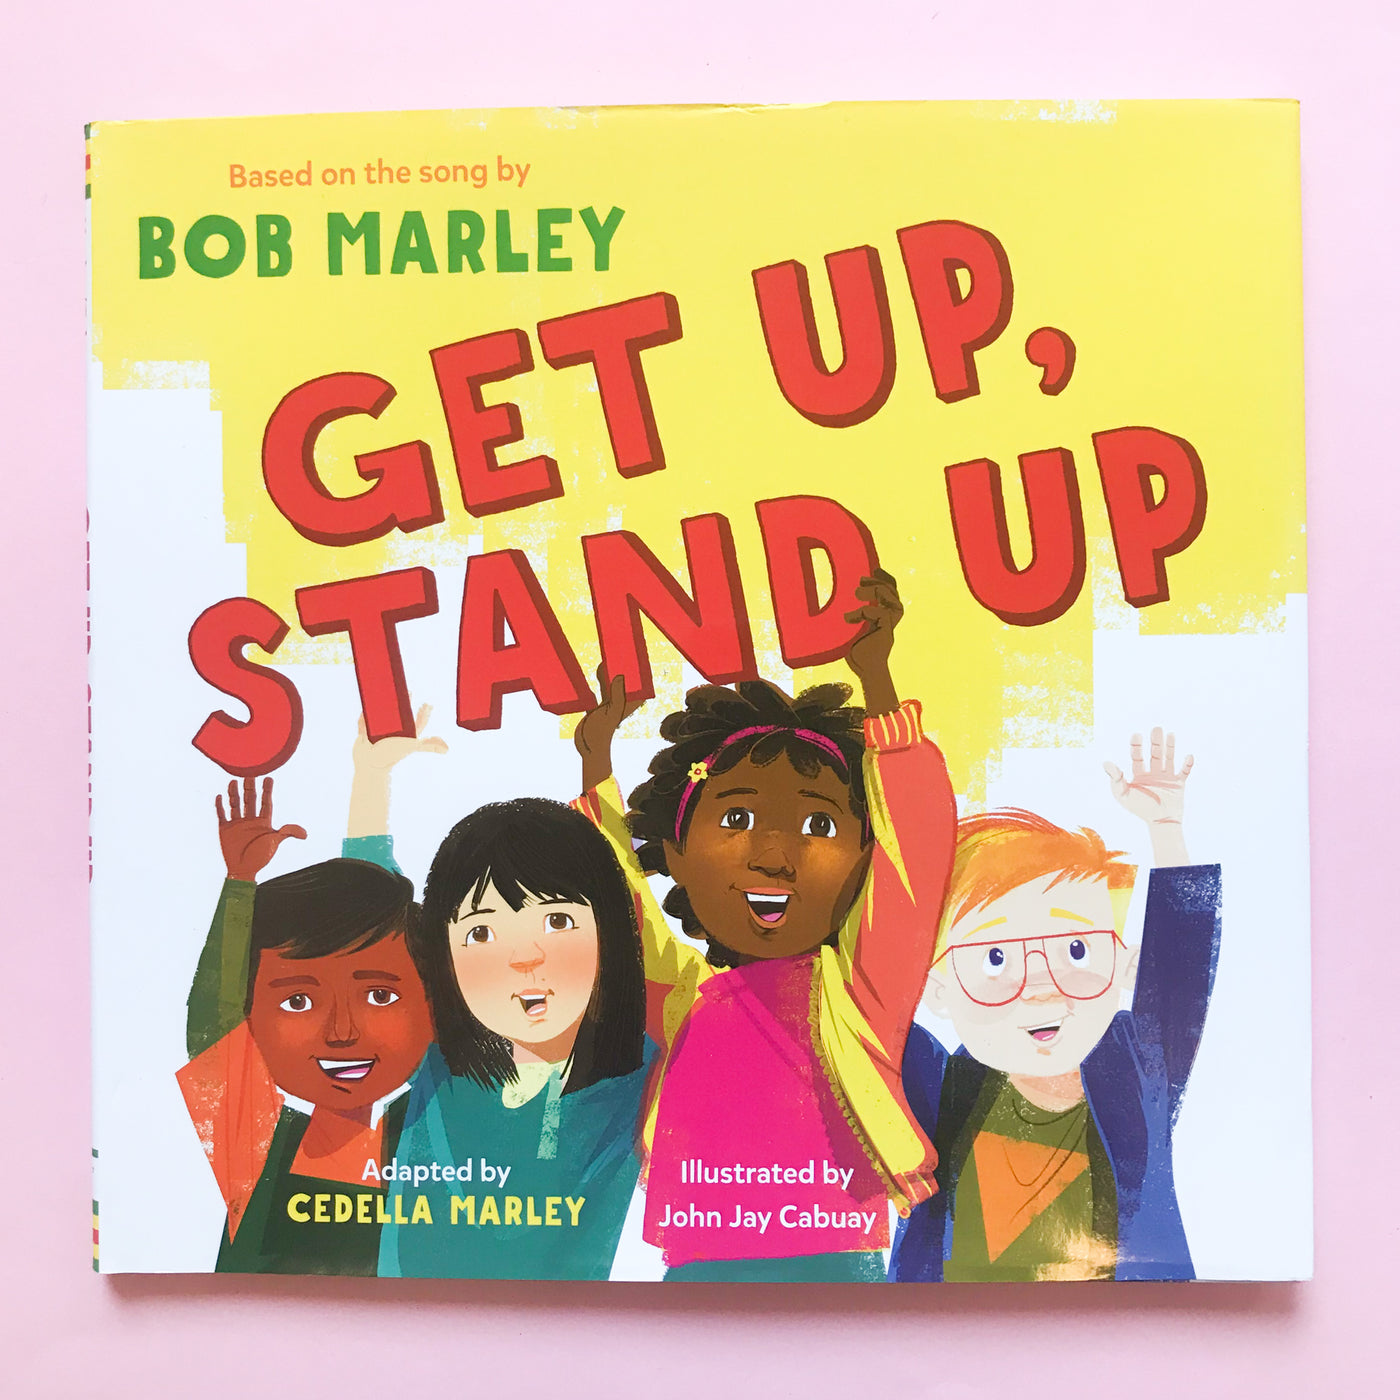 Get Up Stand Up by Bob Marley and adapted by Cedella Marley